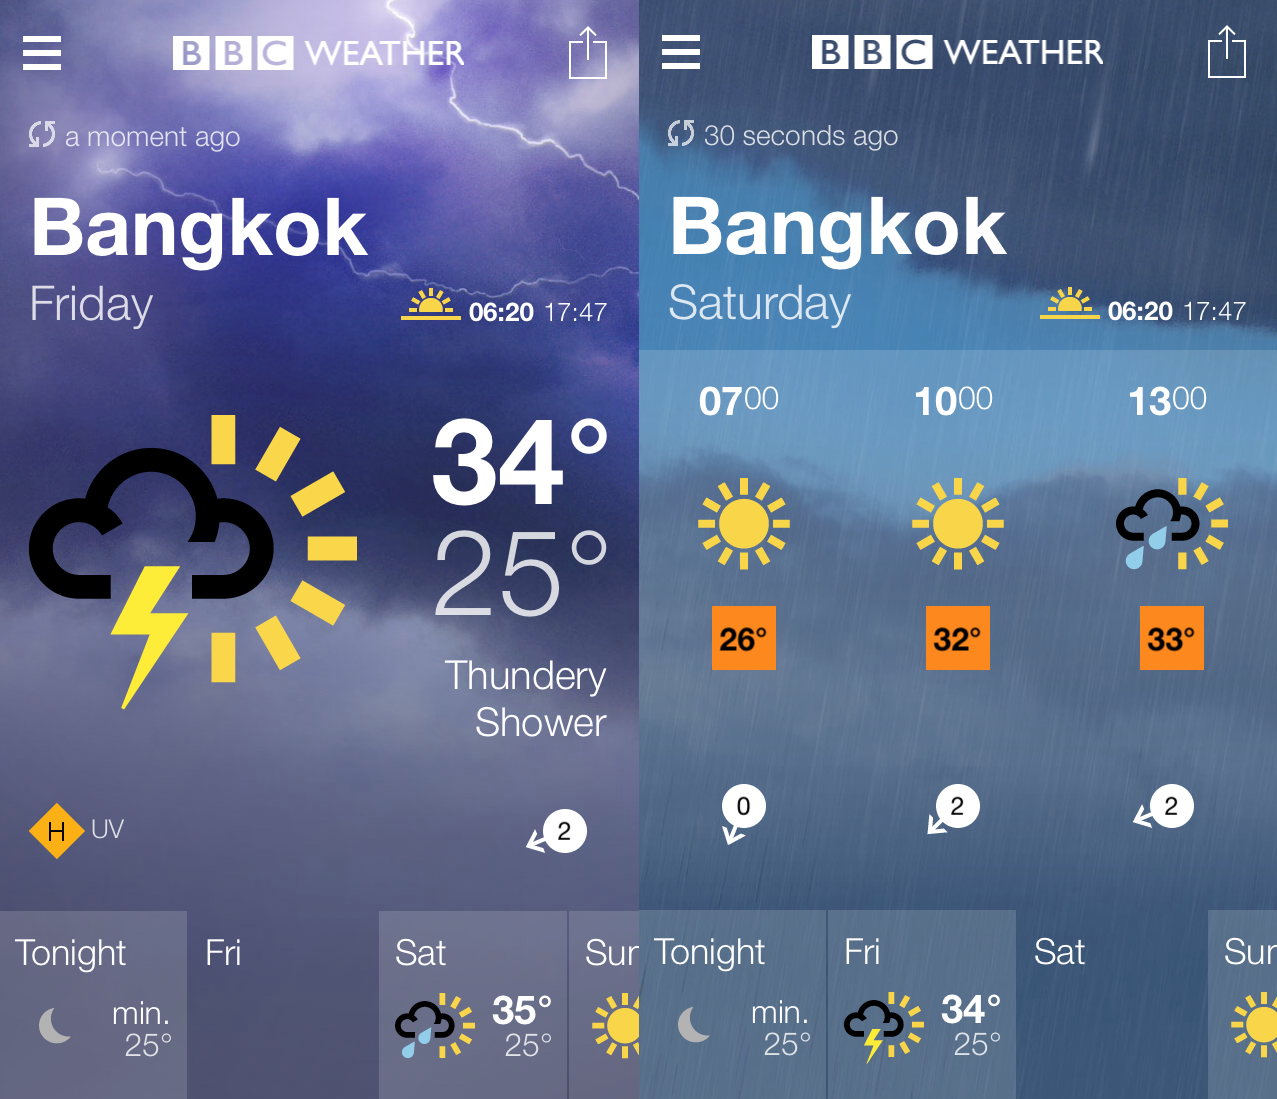 BBC weather picture for Bangkok